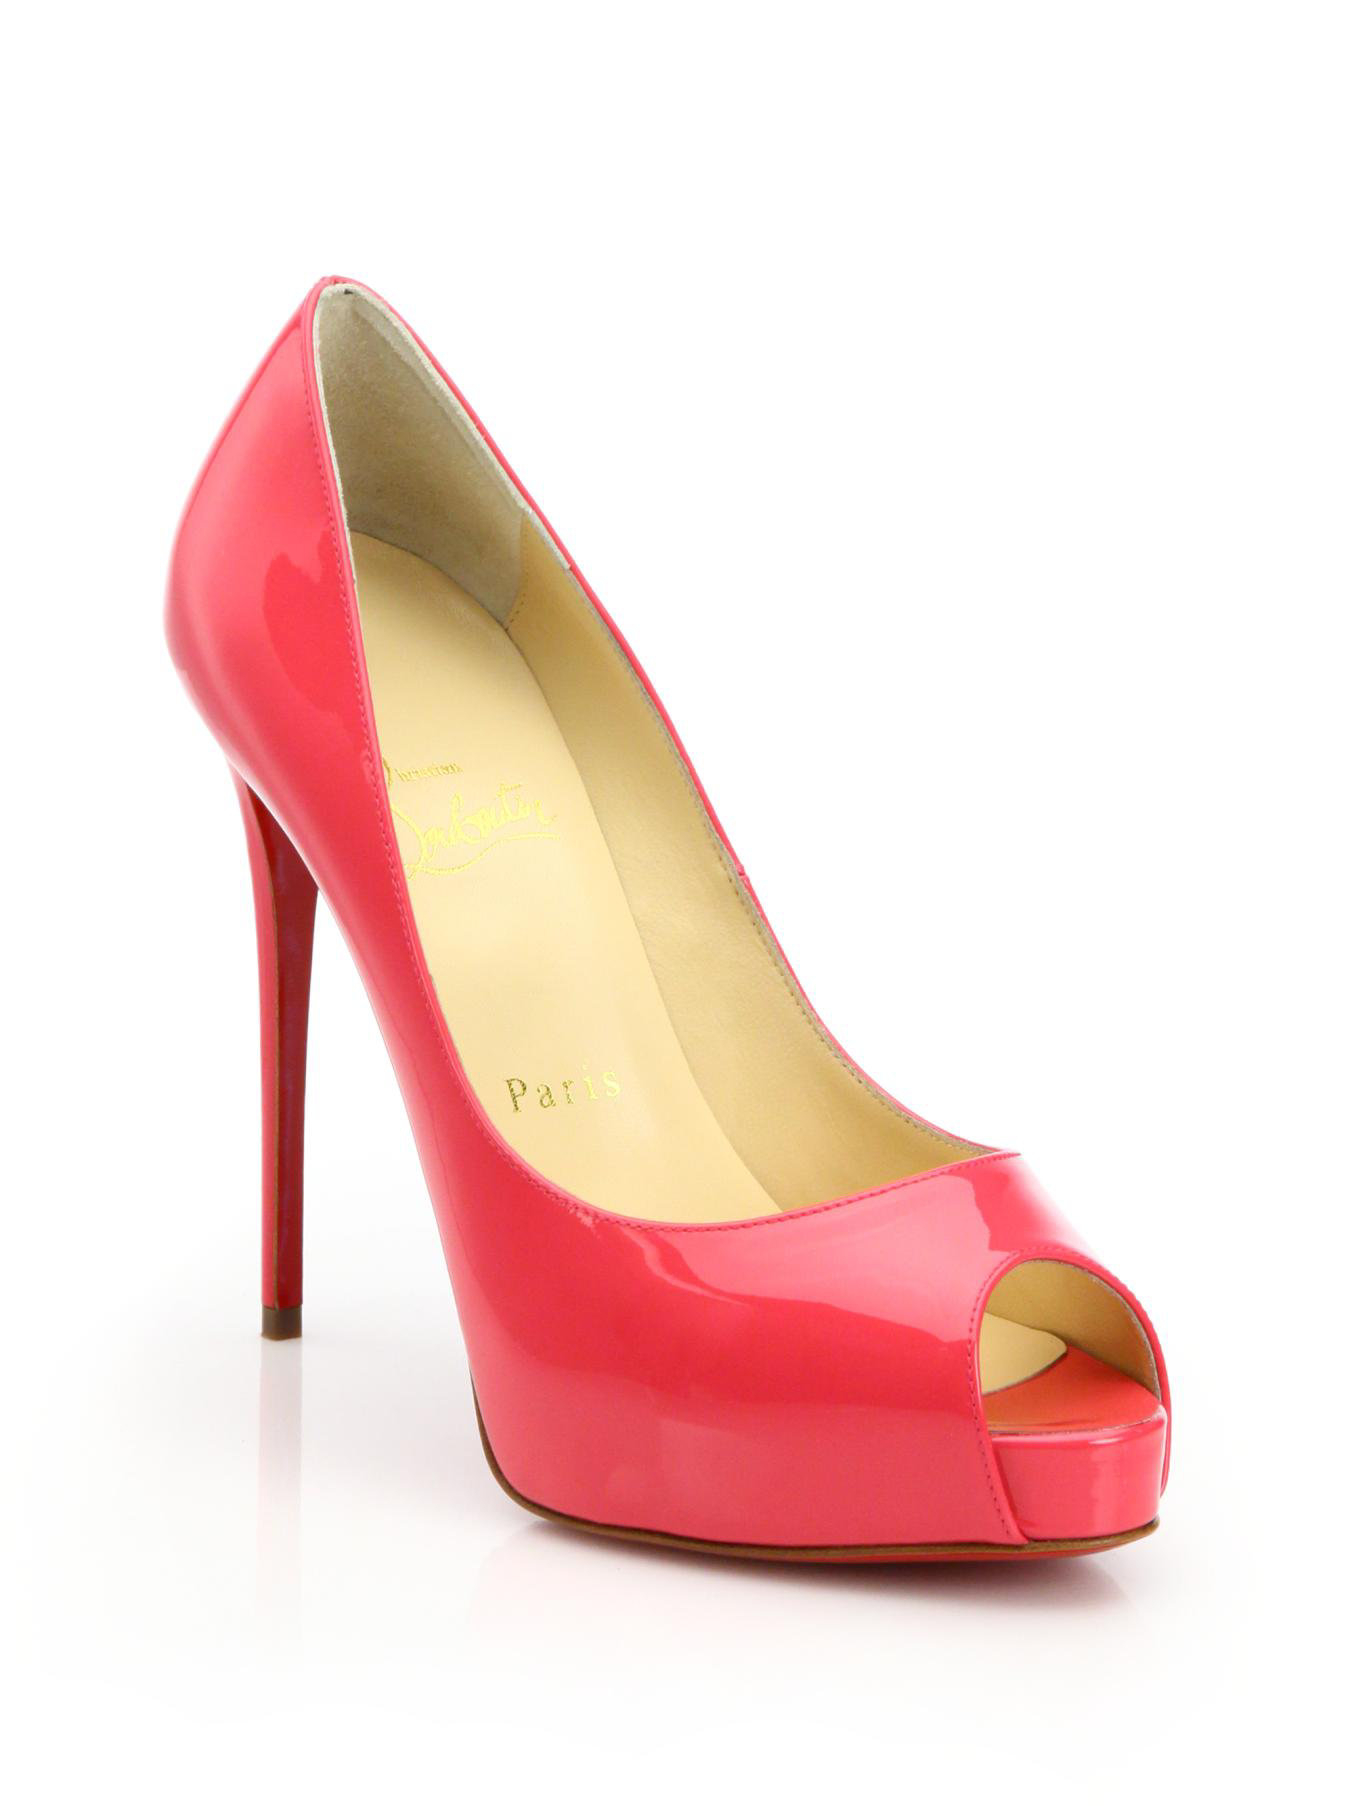 738471849c30 Gallery. Previously sold at  Saks Fifth Avenue · Women s Christian  Louboutin Very Prive ...